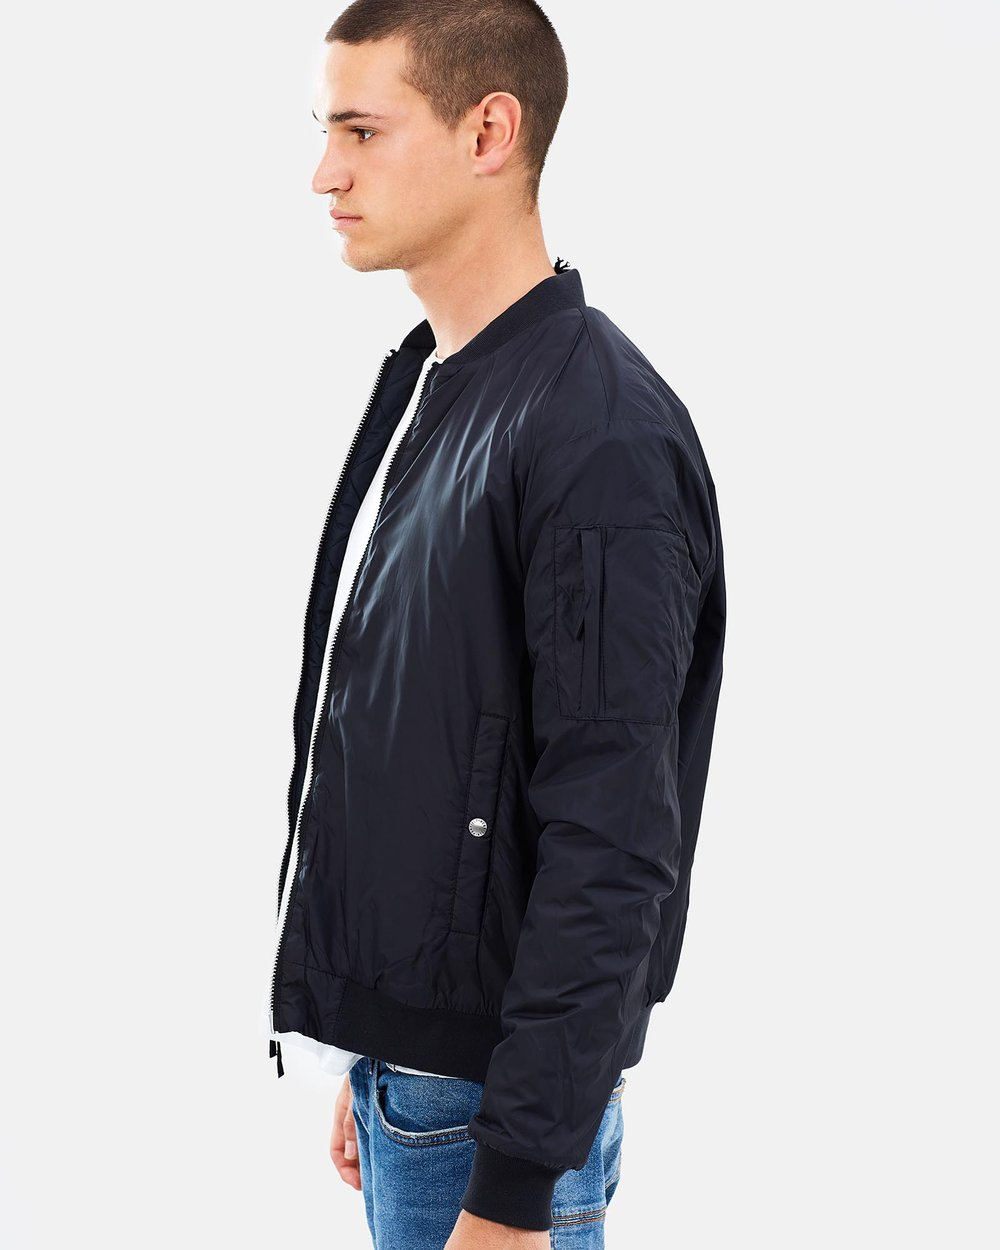 452b7b625 Thurman Bomber Jacket by Penfield Online | THE ICONIC | Australia